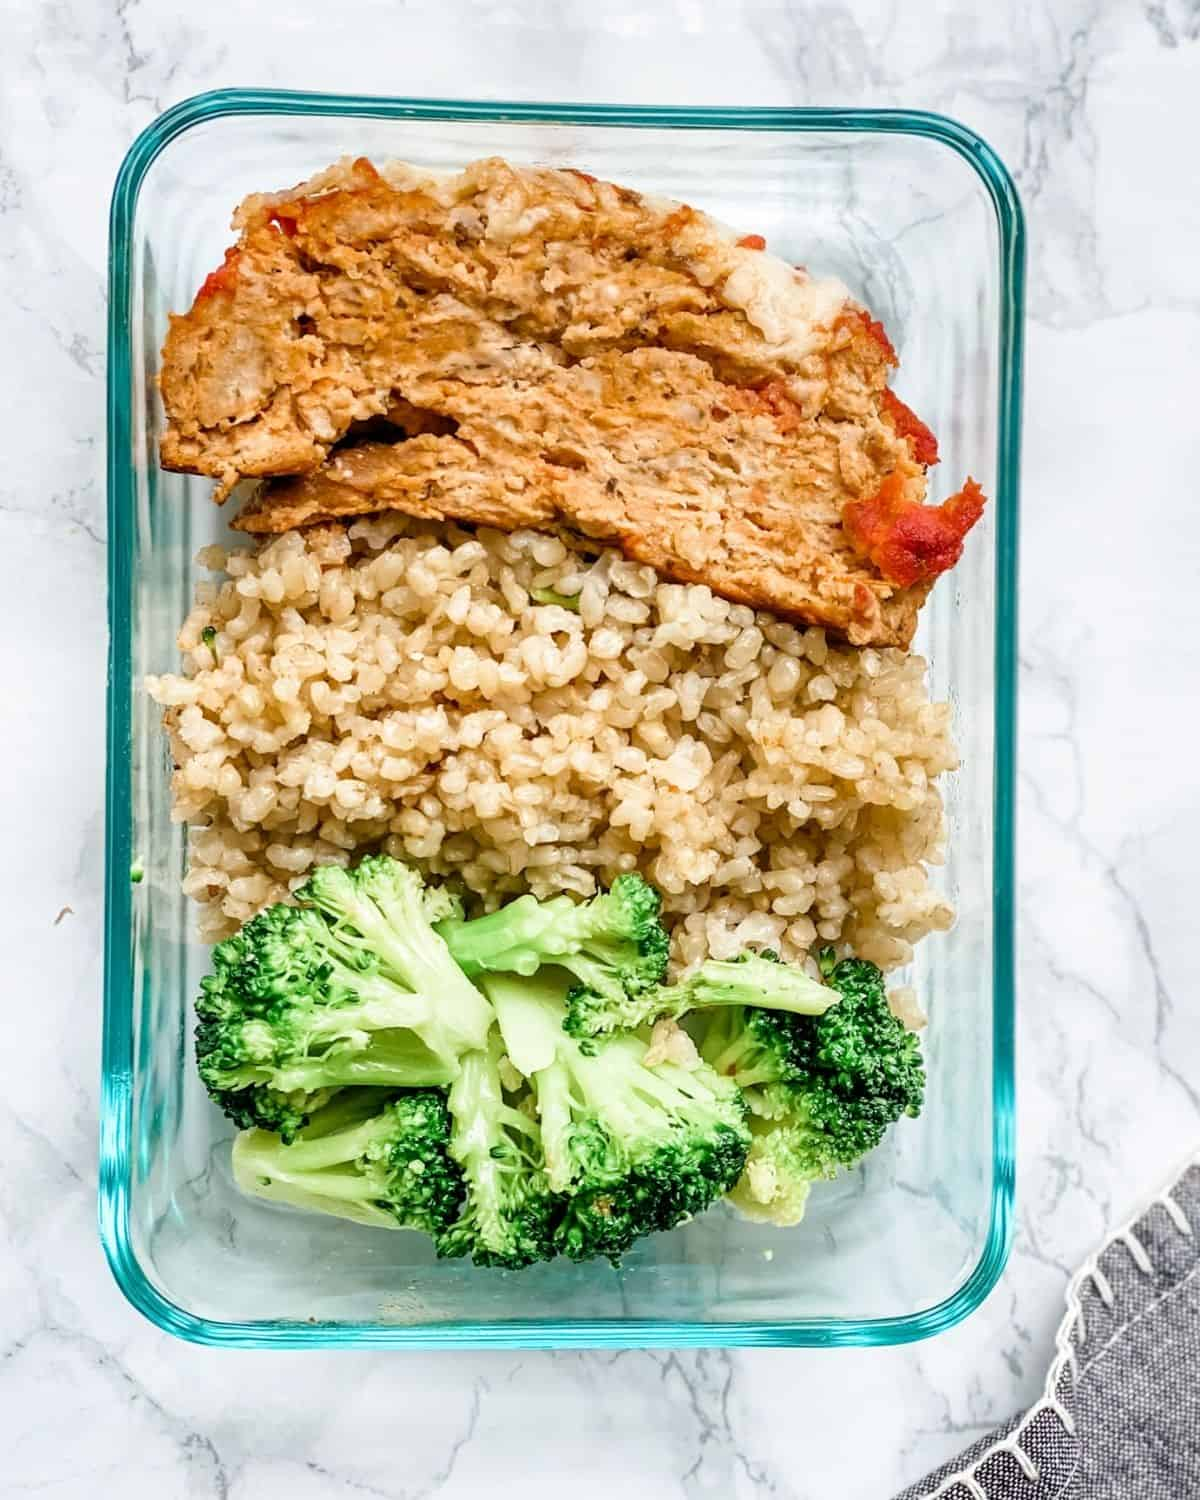 Italian meatloaf in a container with rice and broccoli.